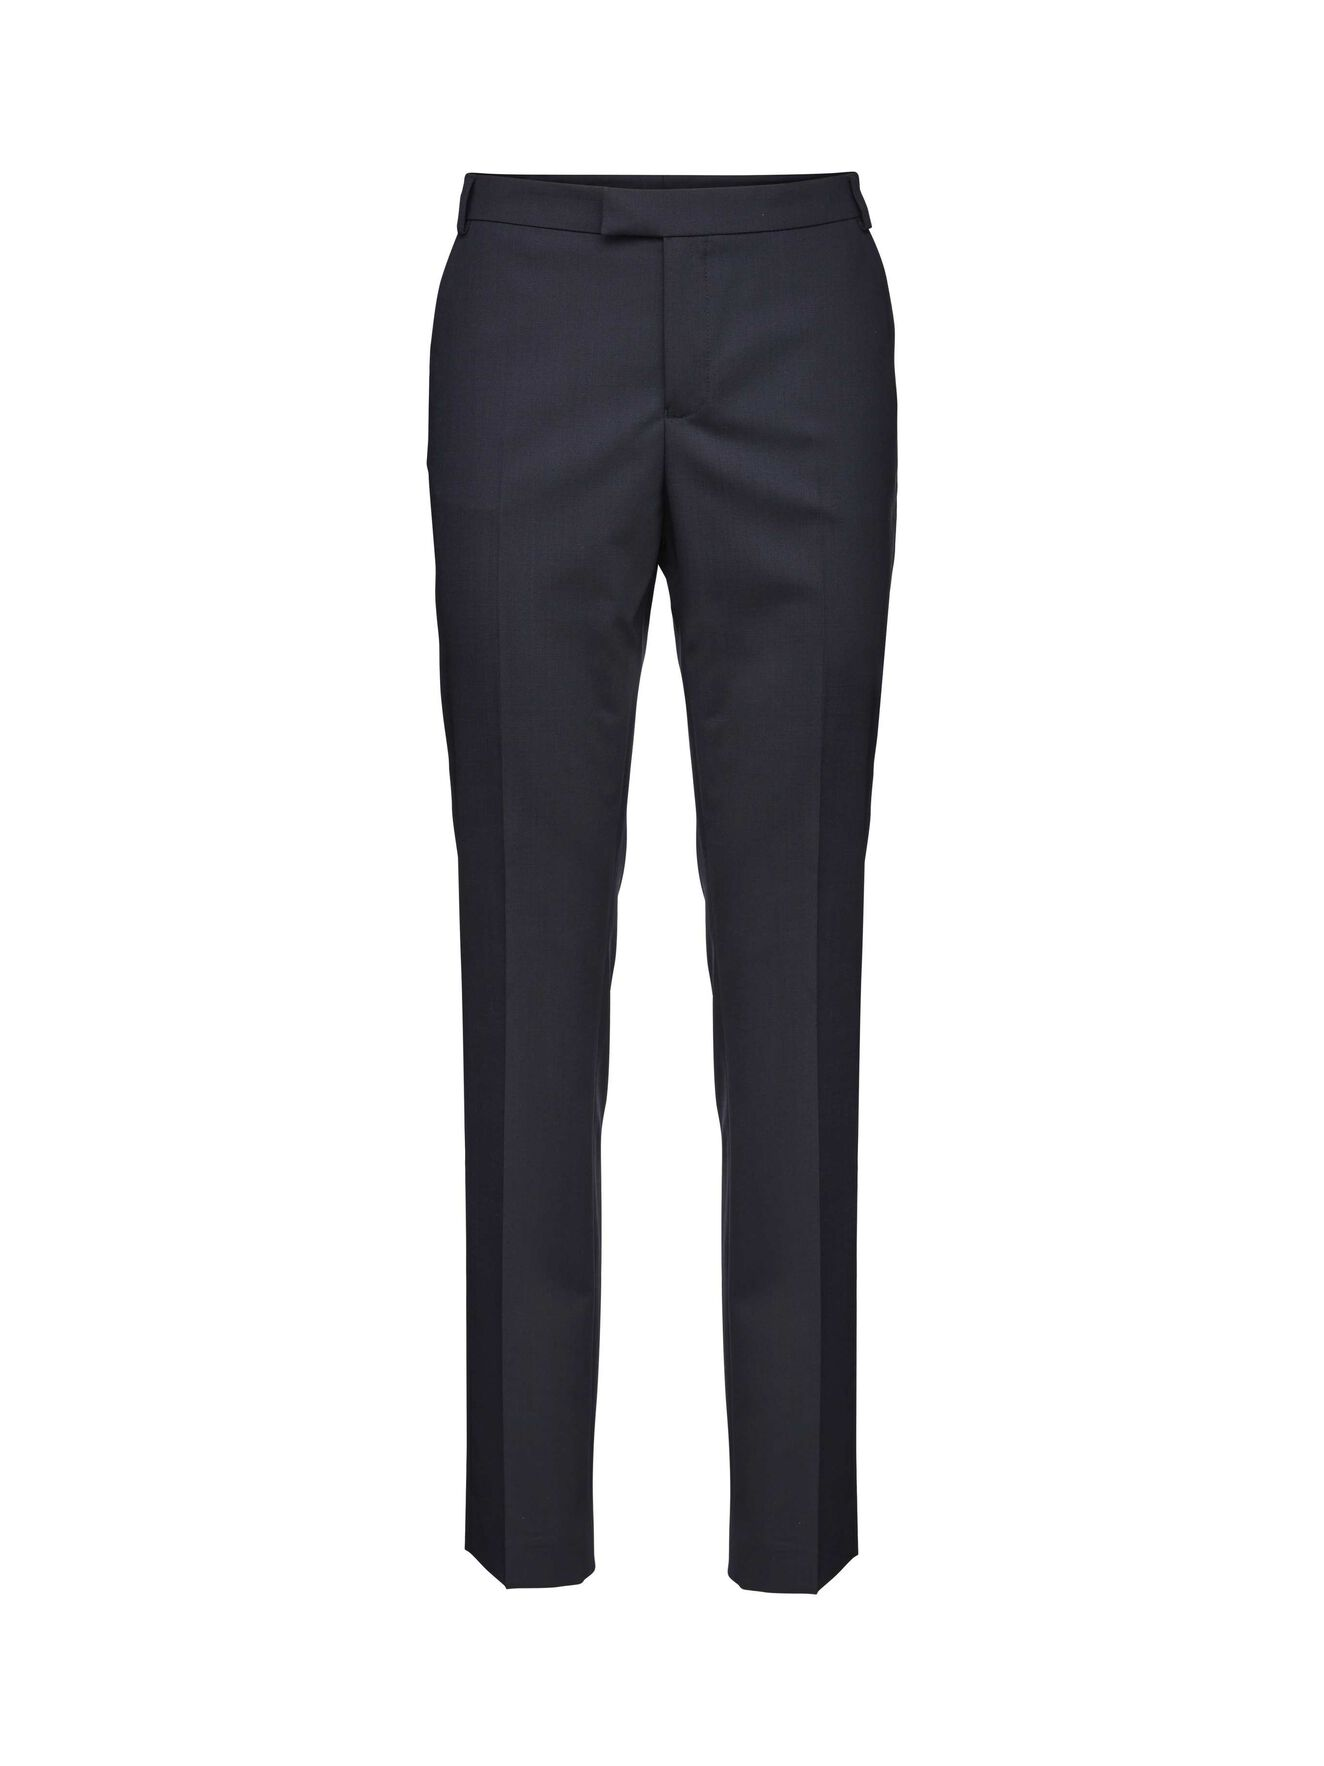 Macie trousers in Midnight Blue from Tiger of Sweden